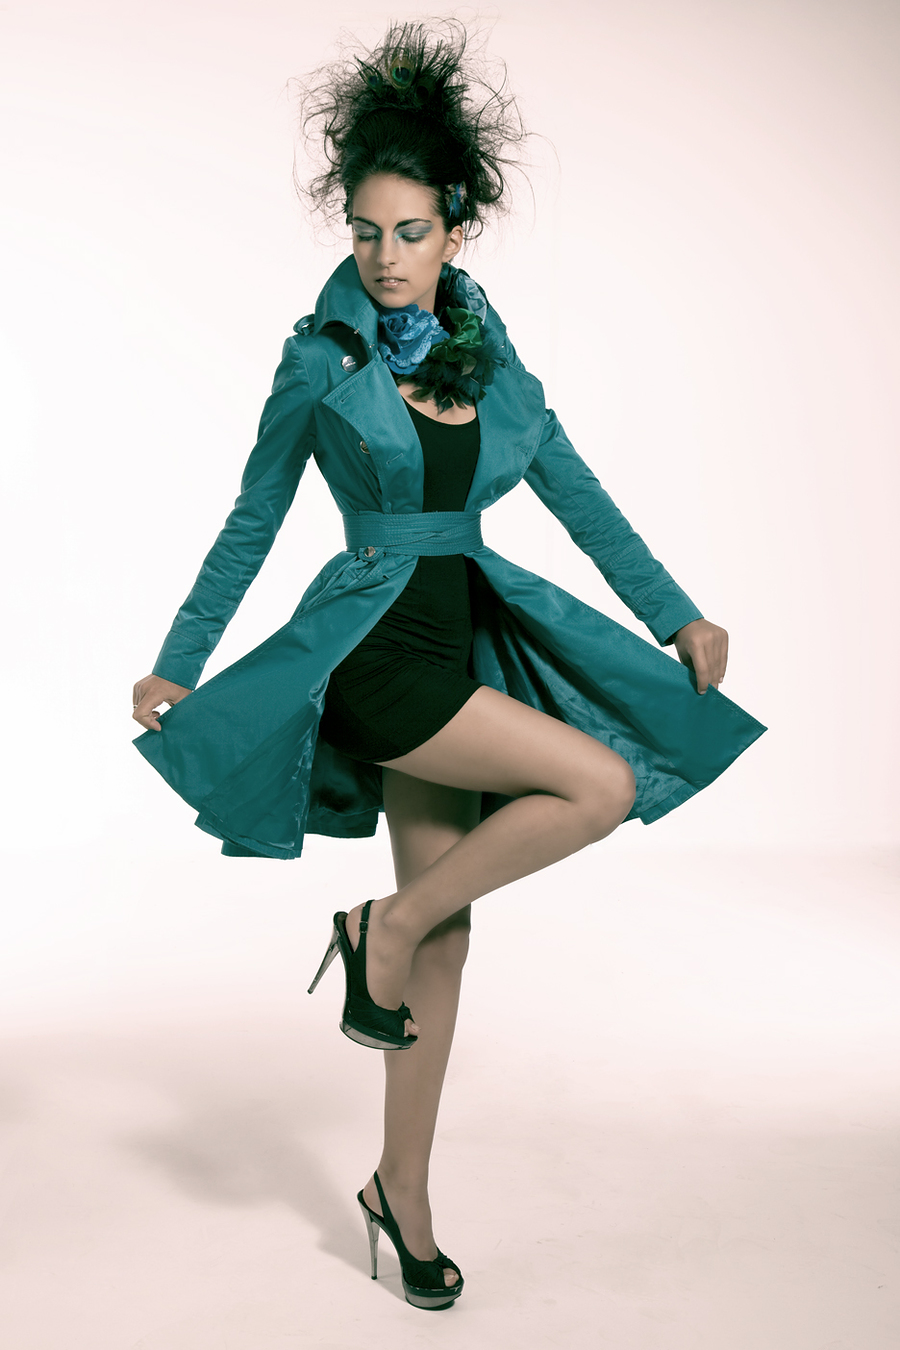 Peacock themed creative shoot